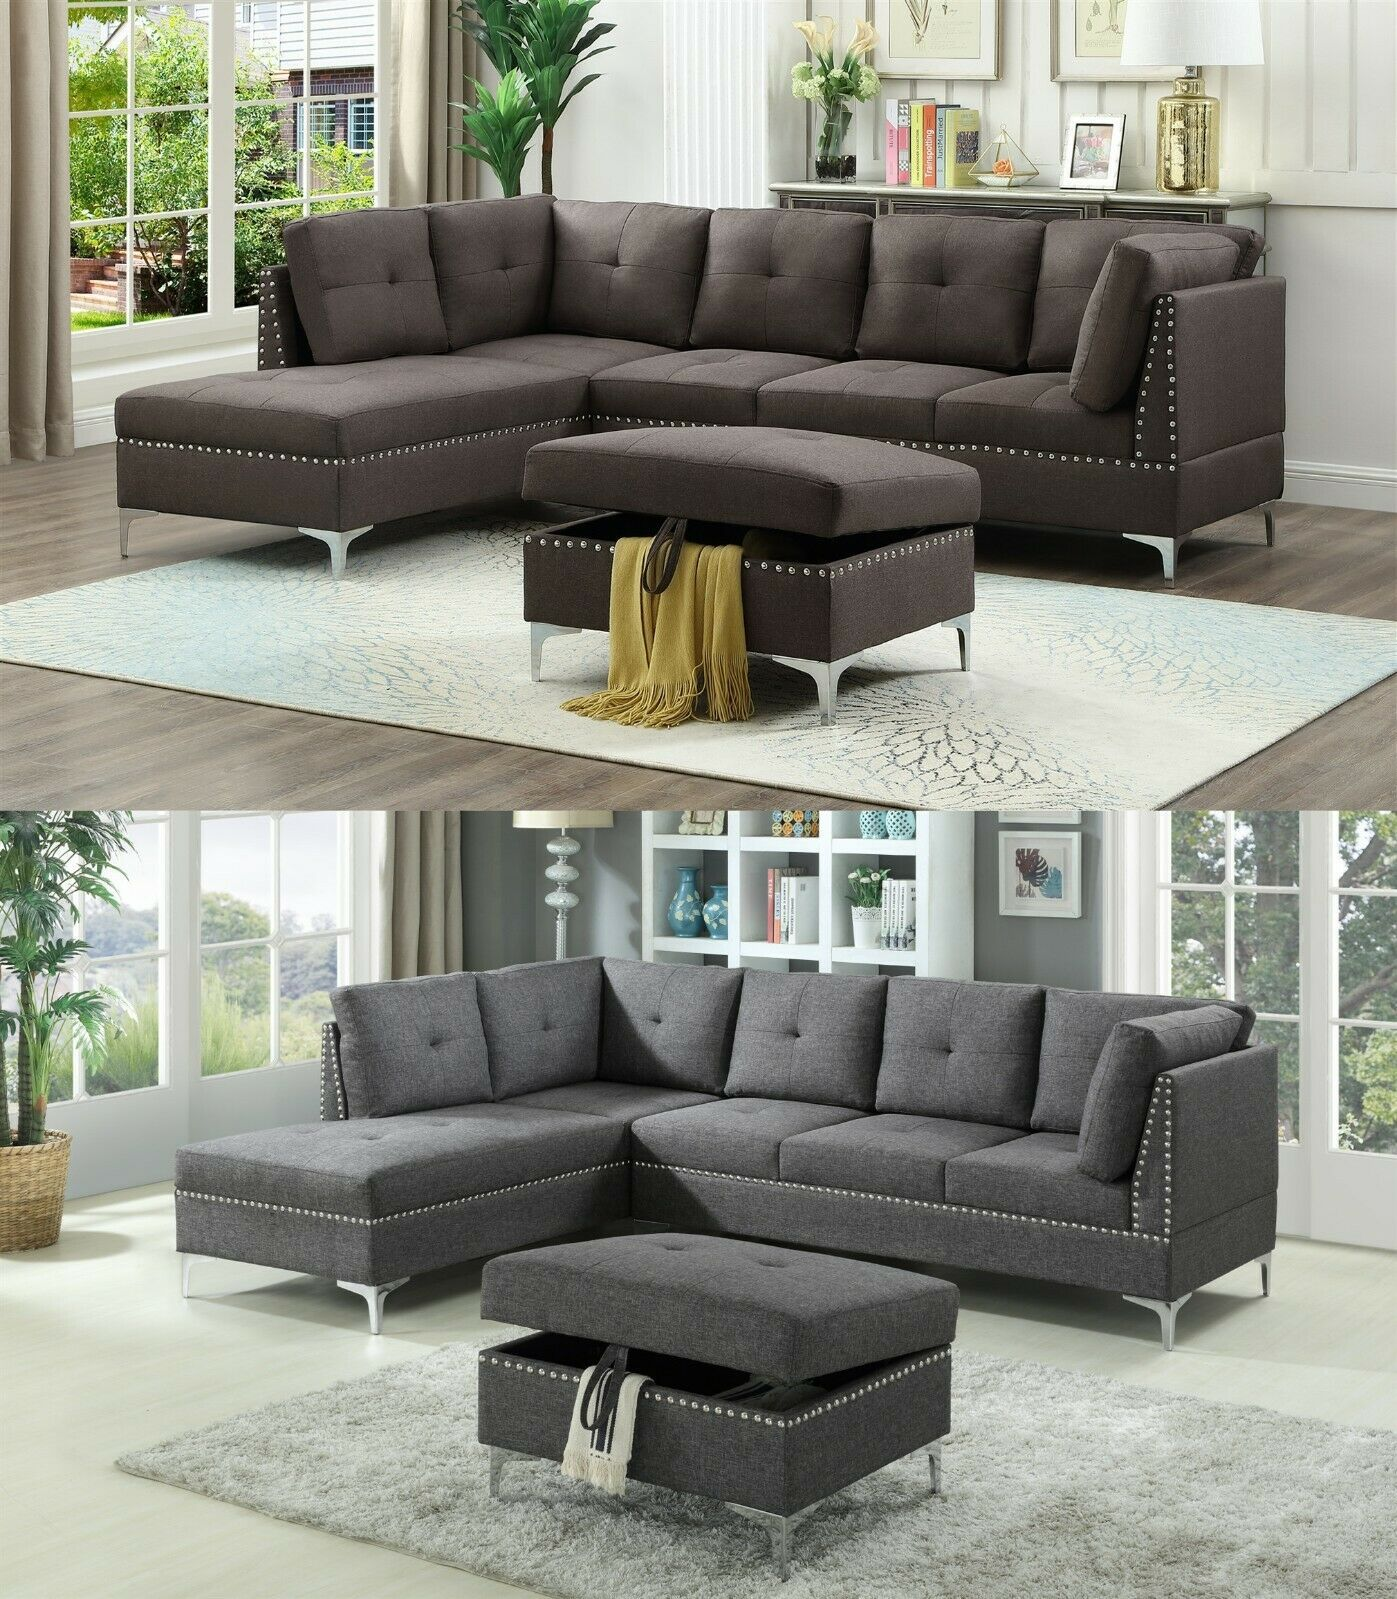 The Room Style 3 Piece Fabric Sectional Sofa Set With Ottoman In Brown Gray Sofa Set Ideas Of Sofa Set Sofa Fabric Sectional Sofas Sofa Set Grey Sofa Set